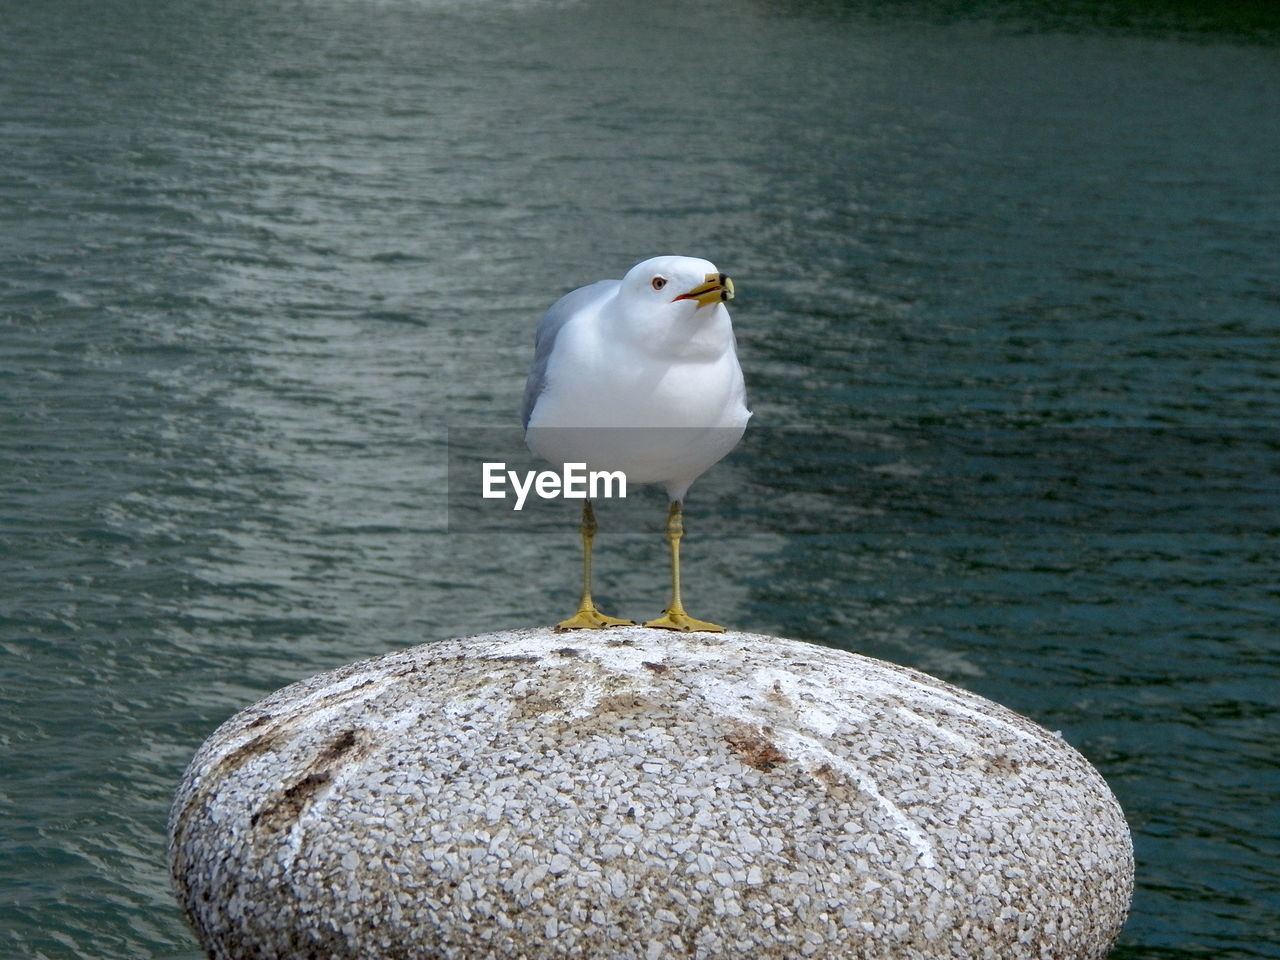 bird, animal themes, animal, vertebrate, one animal, water, animals in the wild, perching, animal wildlife, seagull, no people, solid, sea, day, rock, rock - object, focus on foreground, nature, outdoors, post, wooden post